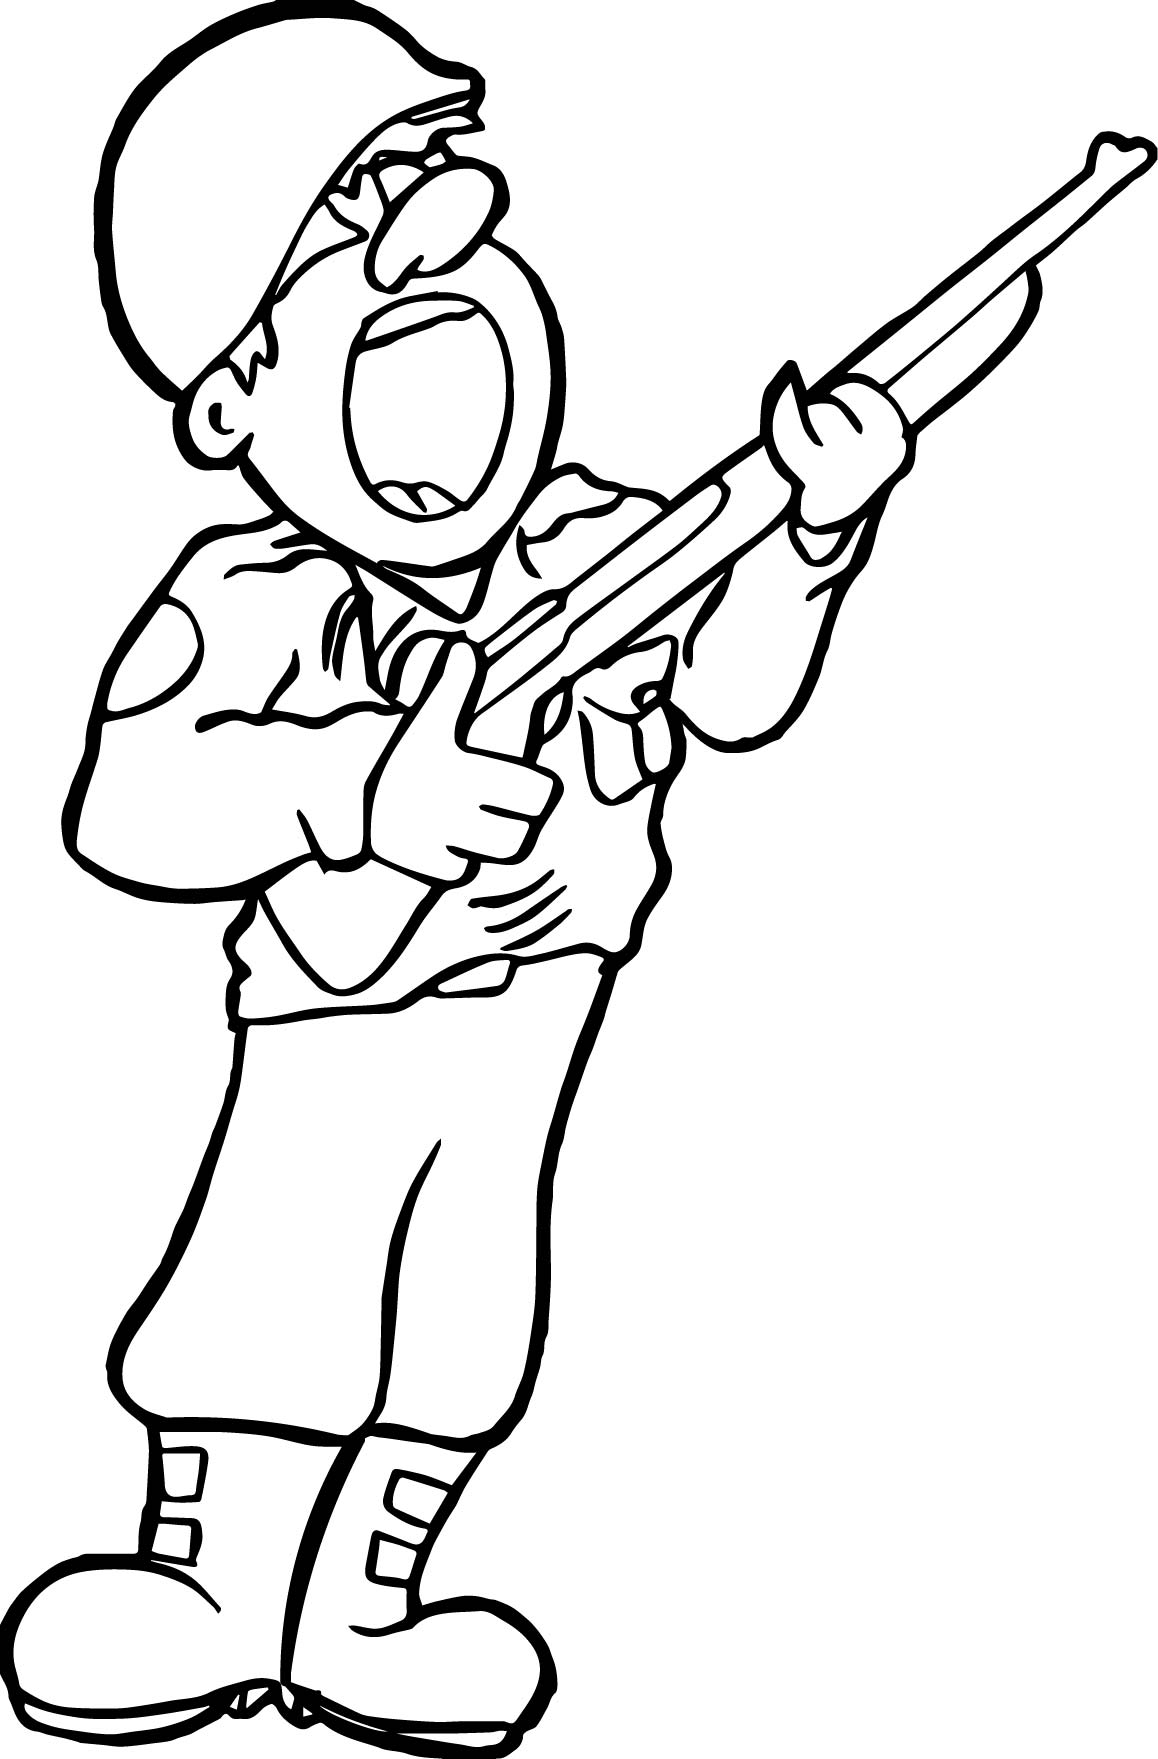 Soldier Shout Coloring Page